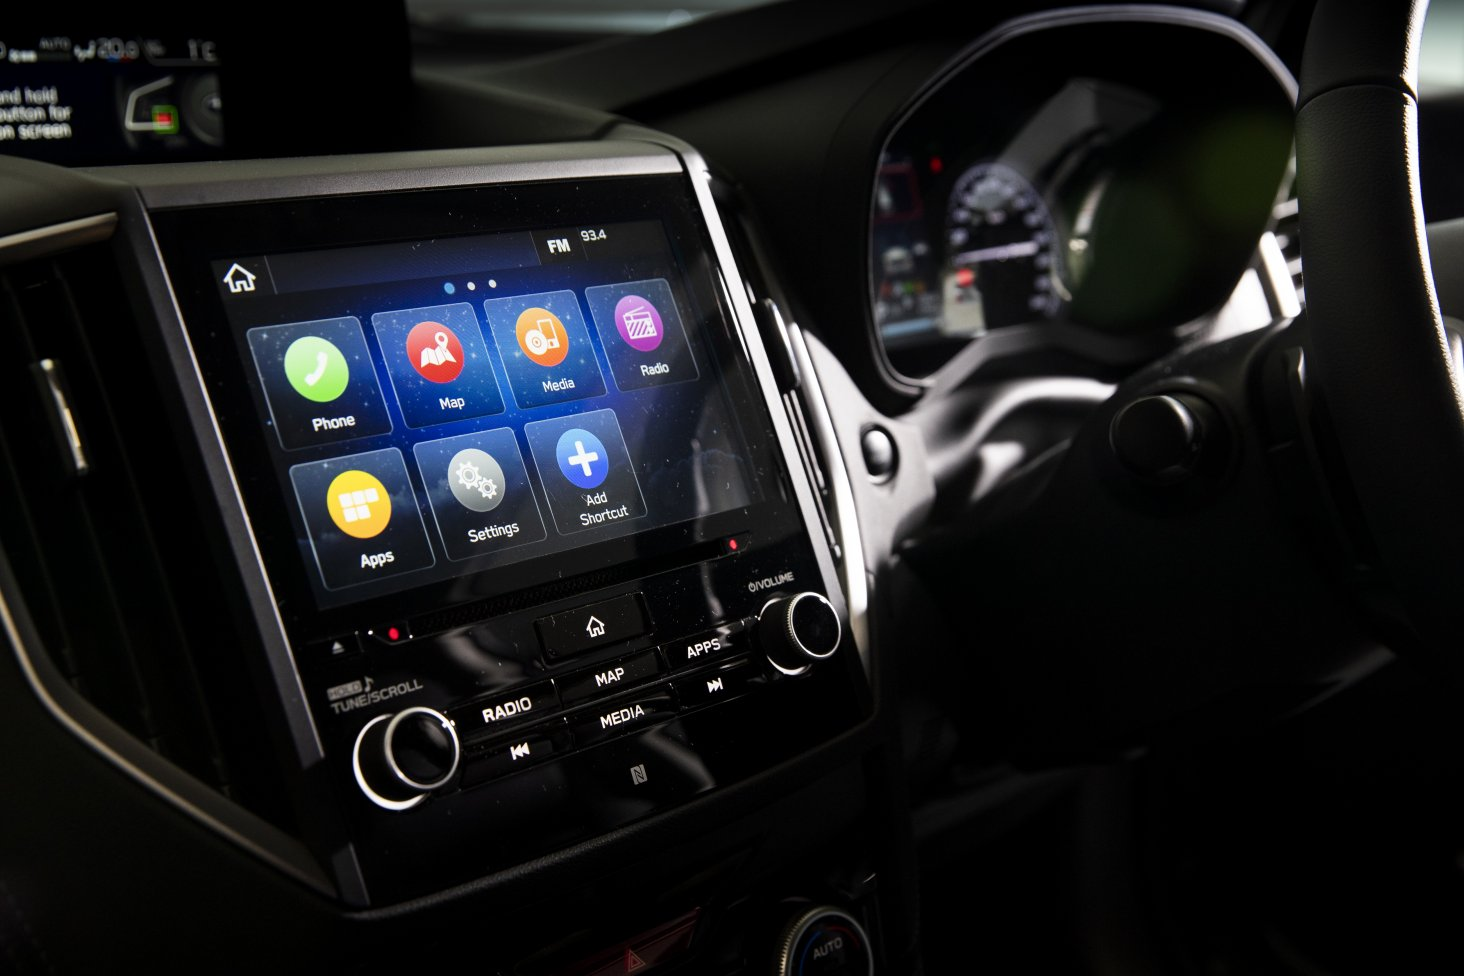 The Subaru Forester infotainment system.